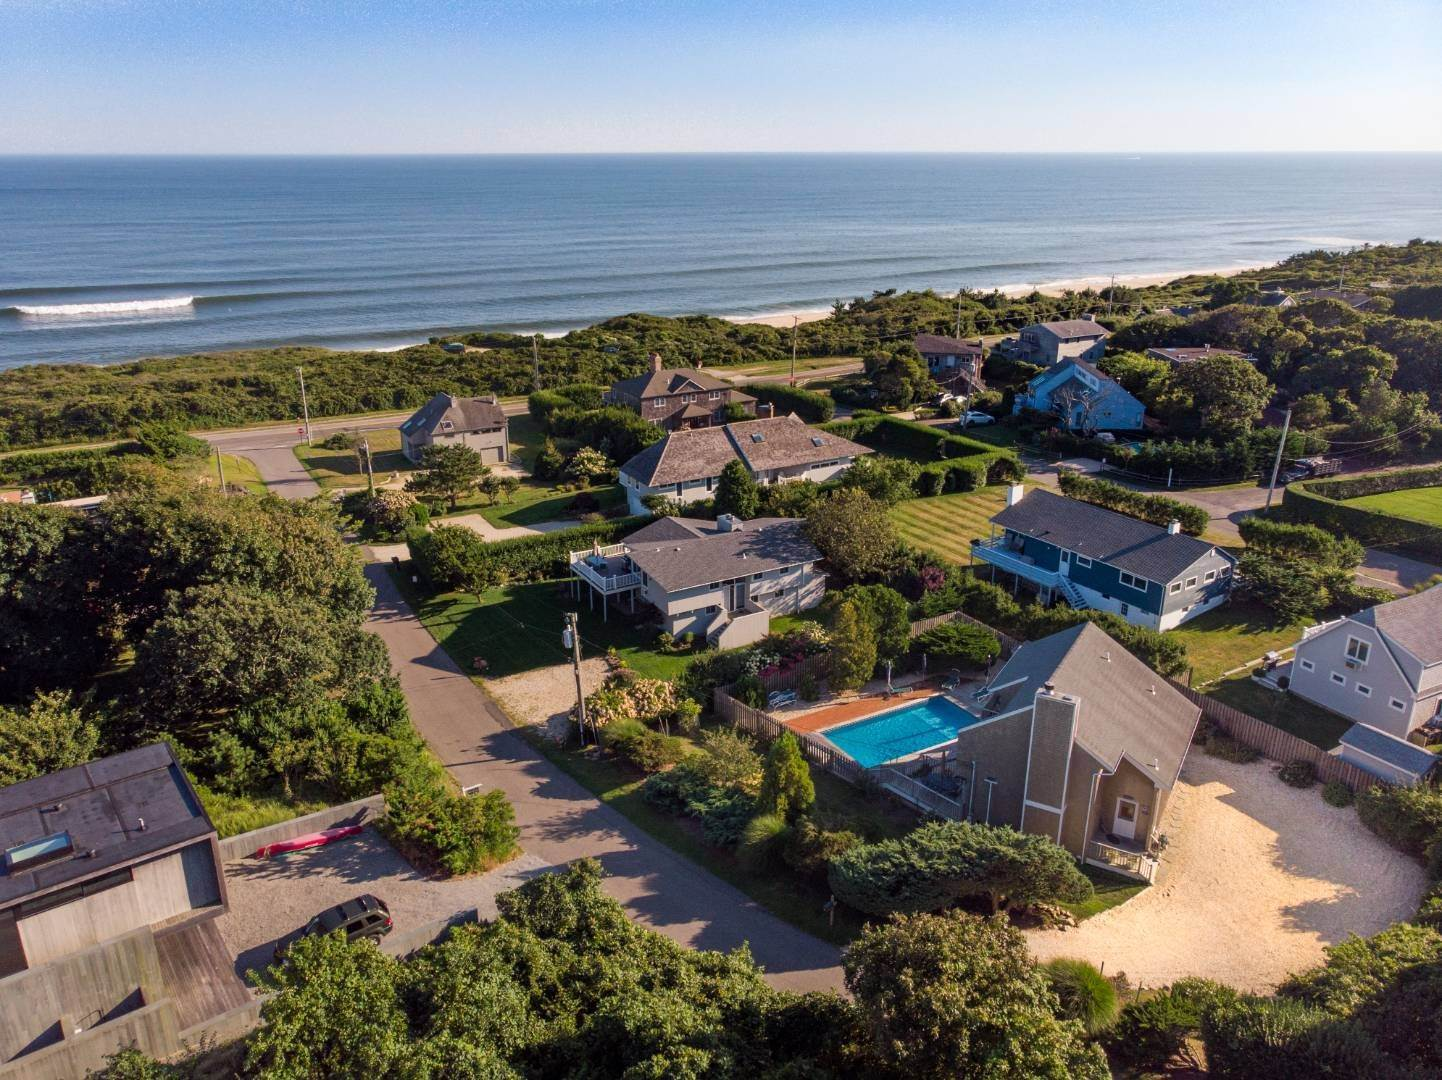 Single Family Home for Sale at Hither Hills Ocean Views With A Pool 21 Coolidge Road, Montauk, NY 11954